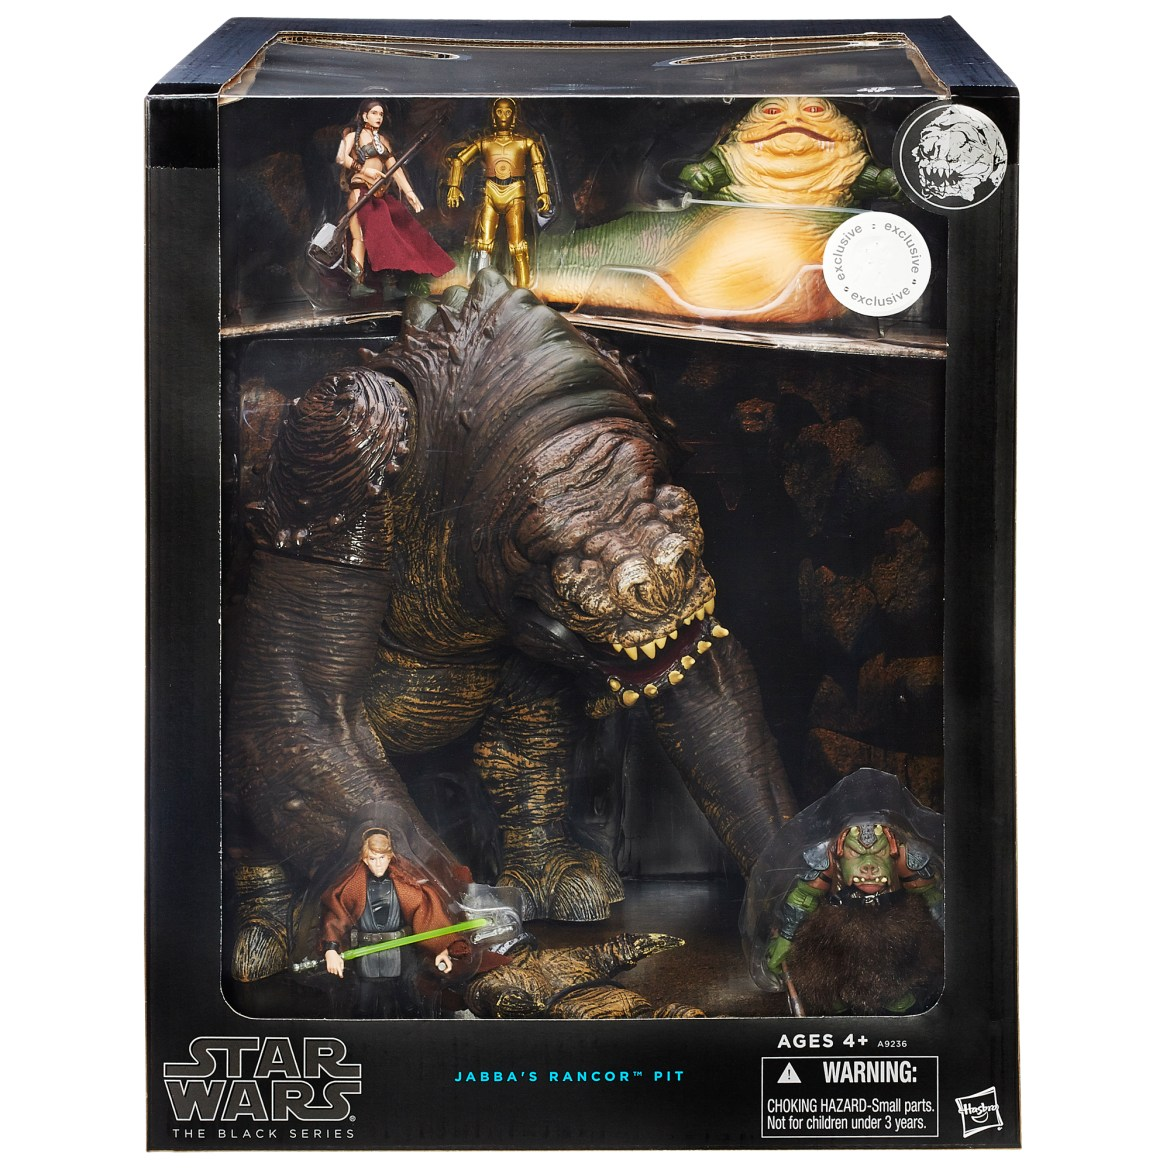 Toys R Us Releases SDCC Exclusive List